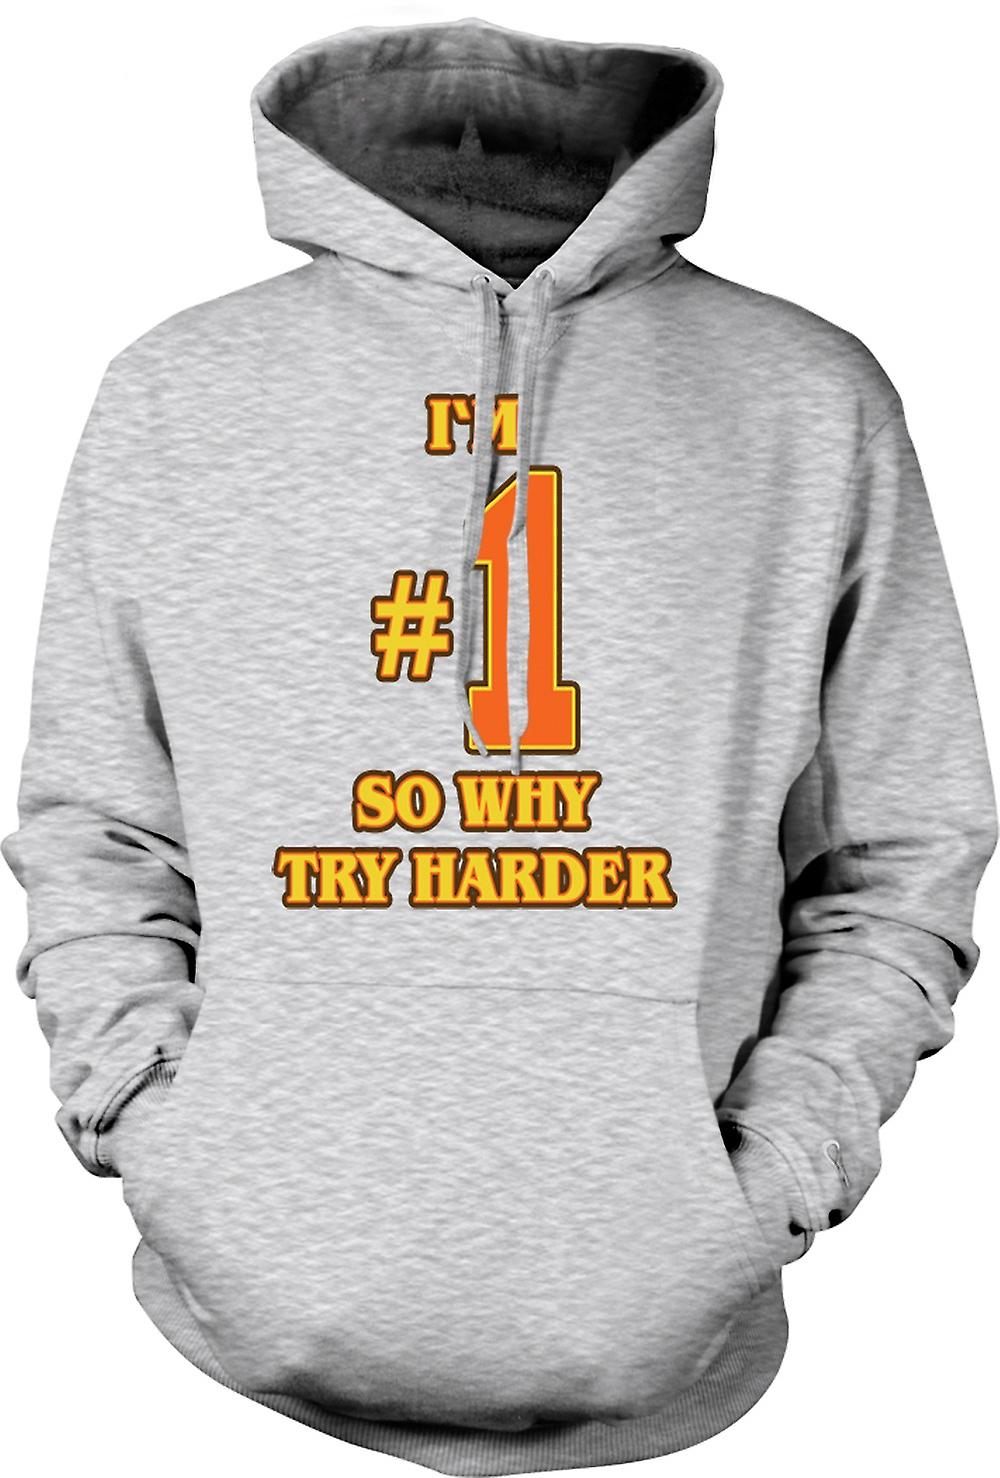 Mens Hoodie - I'm No 1 So Why Try Harder - Funny